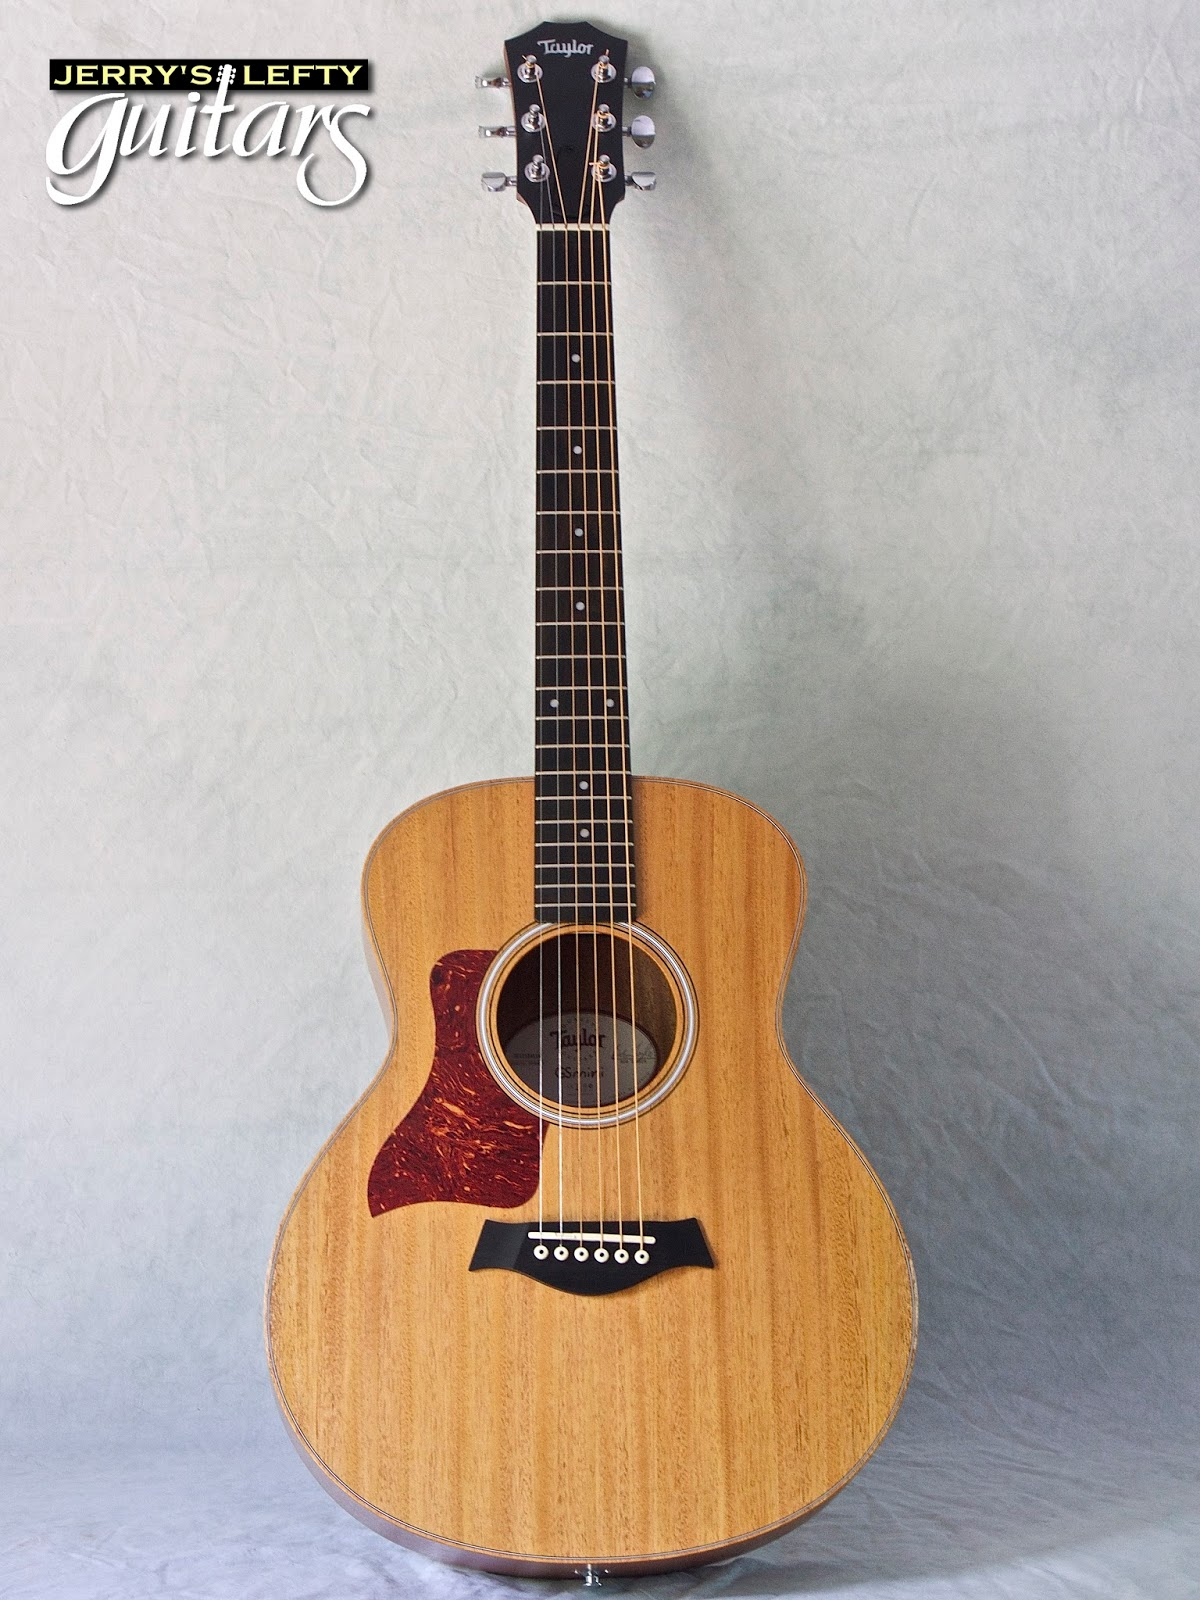 jerry 39 s lefty guitars newest guitar arrivals updated weekly taylor gs mini mahogany used left. Black Bedroom Furniture Sets. Home Design Ideas